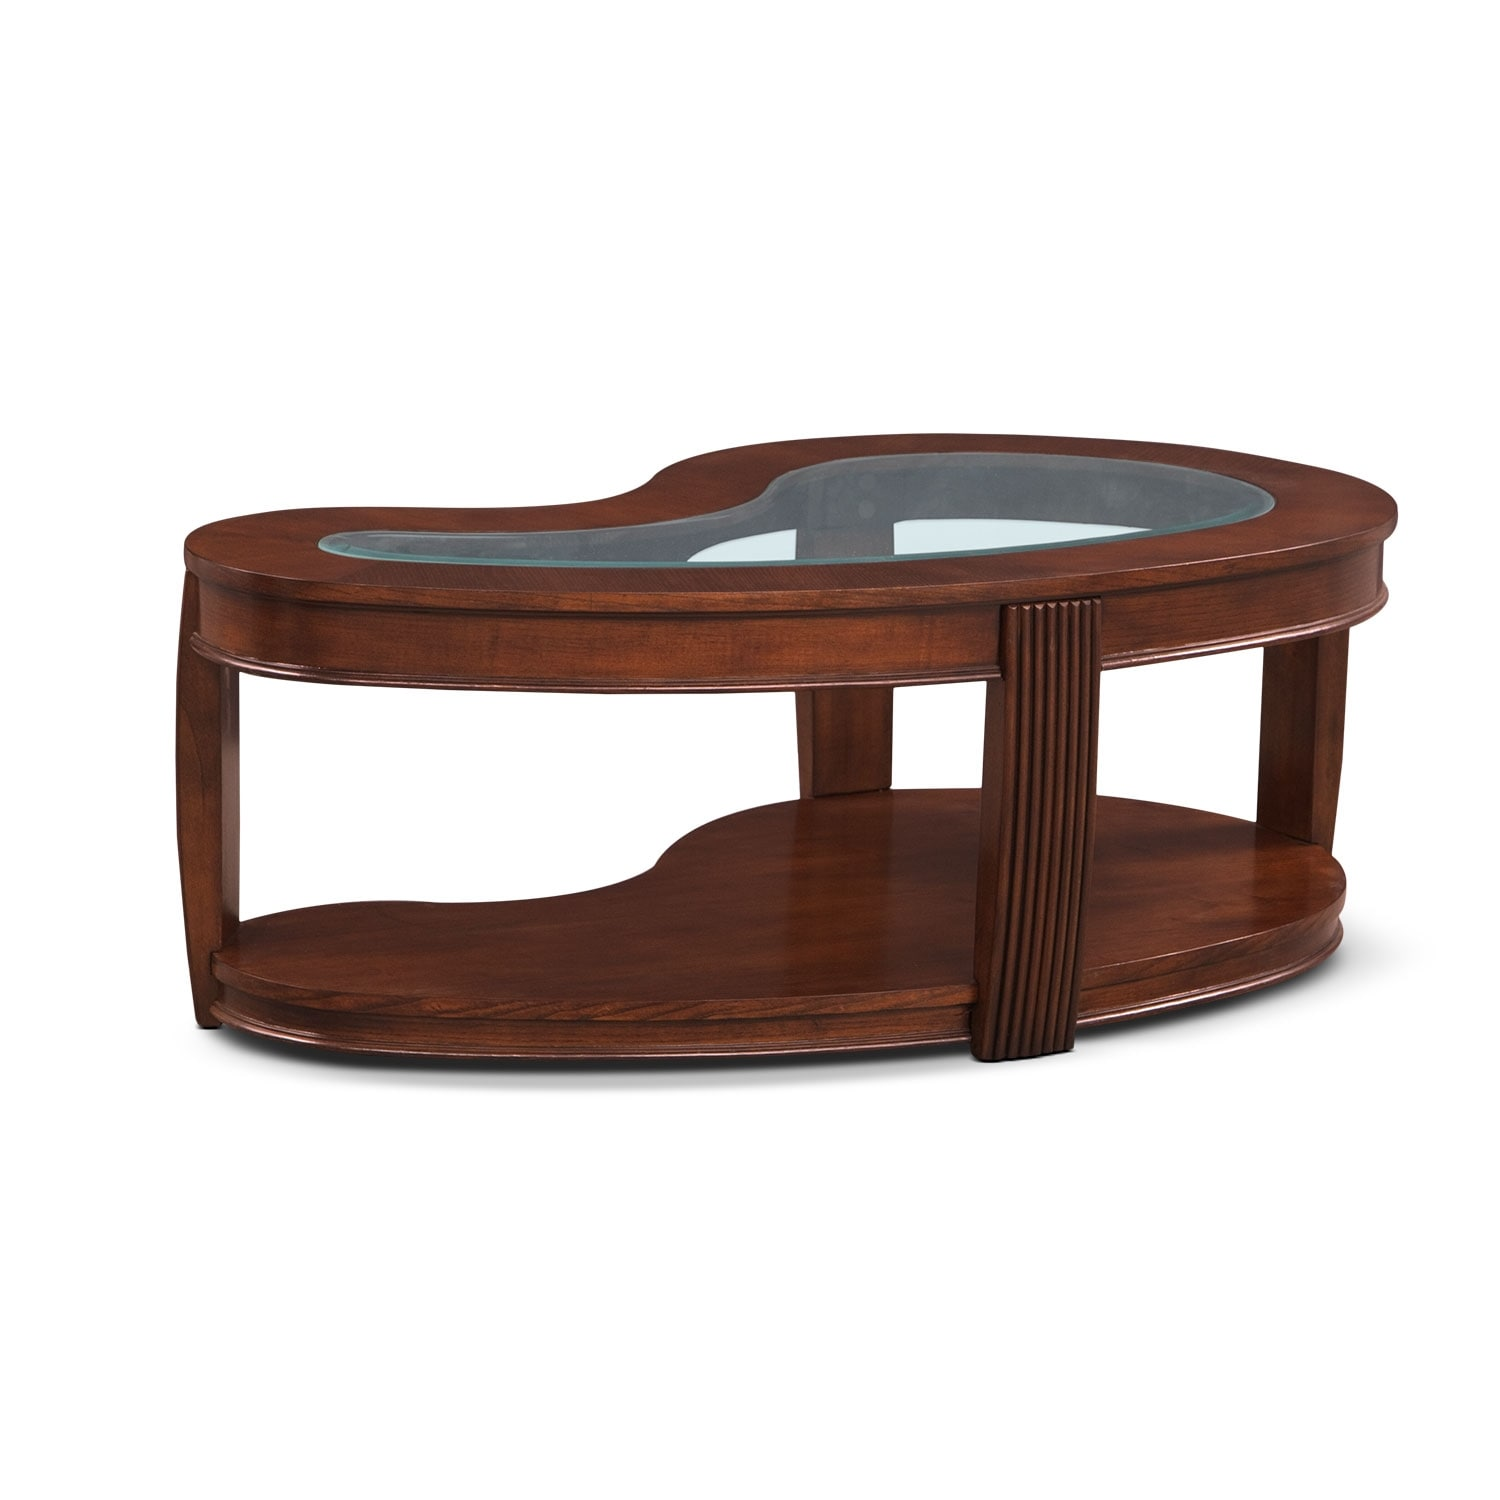 [Teardrop Cocktail Table]